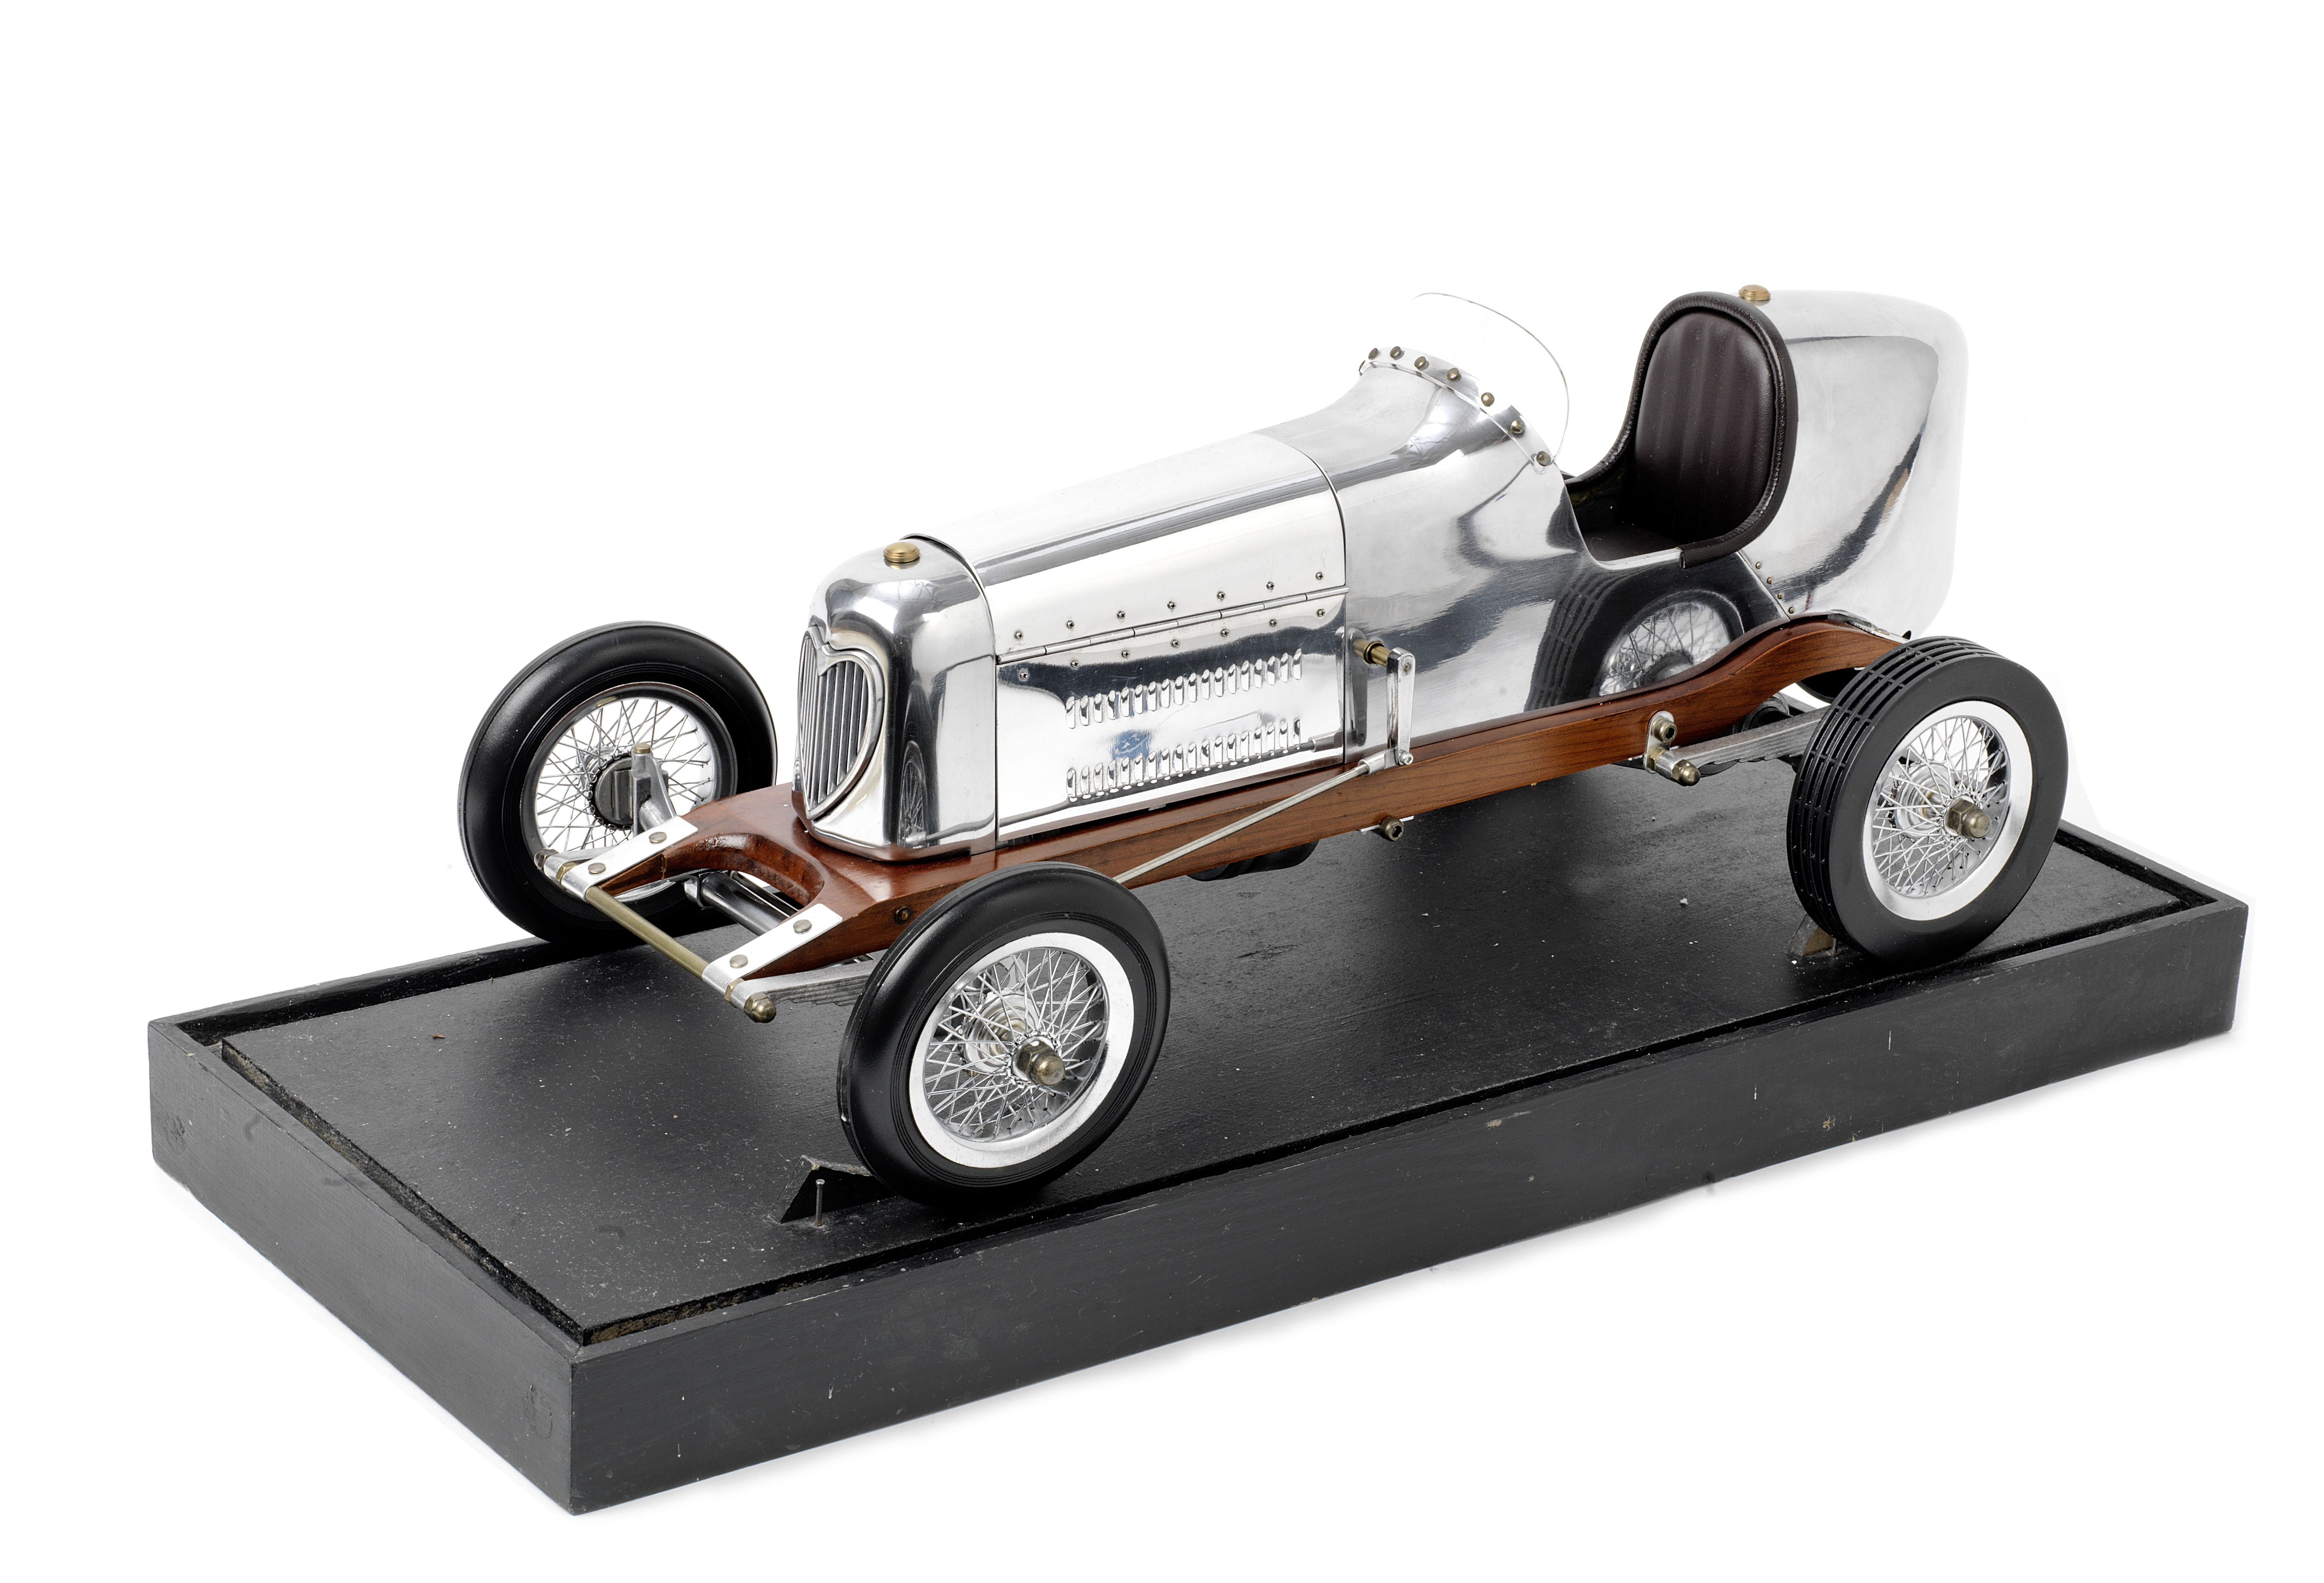 A 1:8 scale model of a single seat racing car,